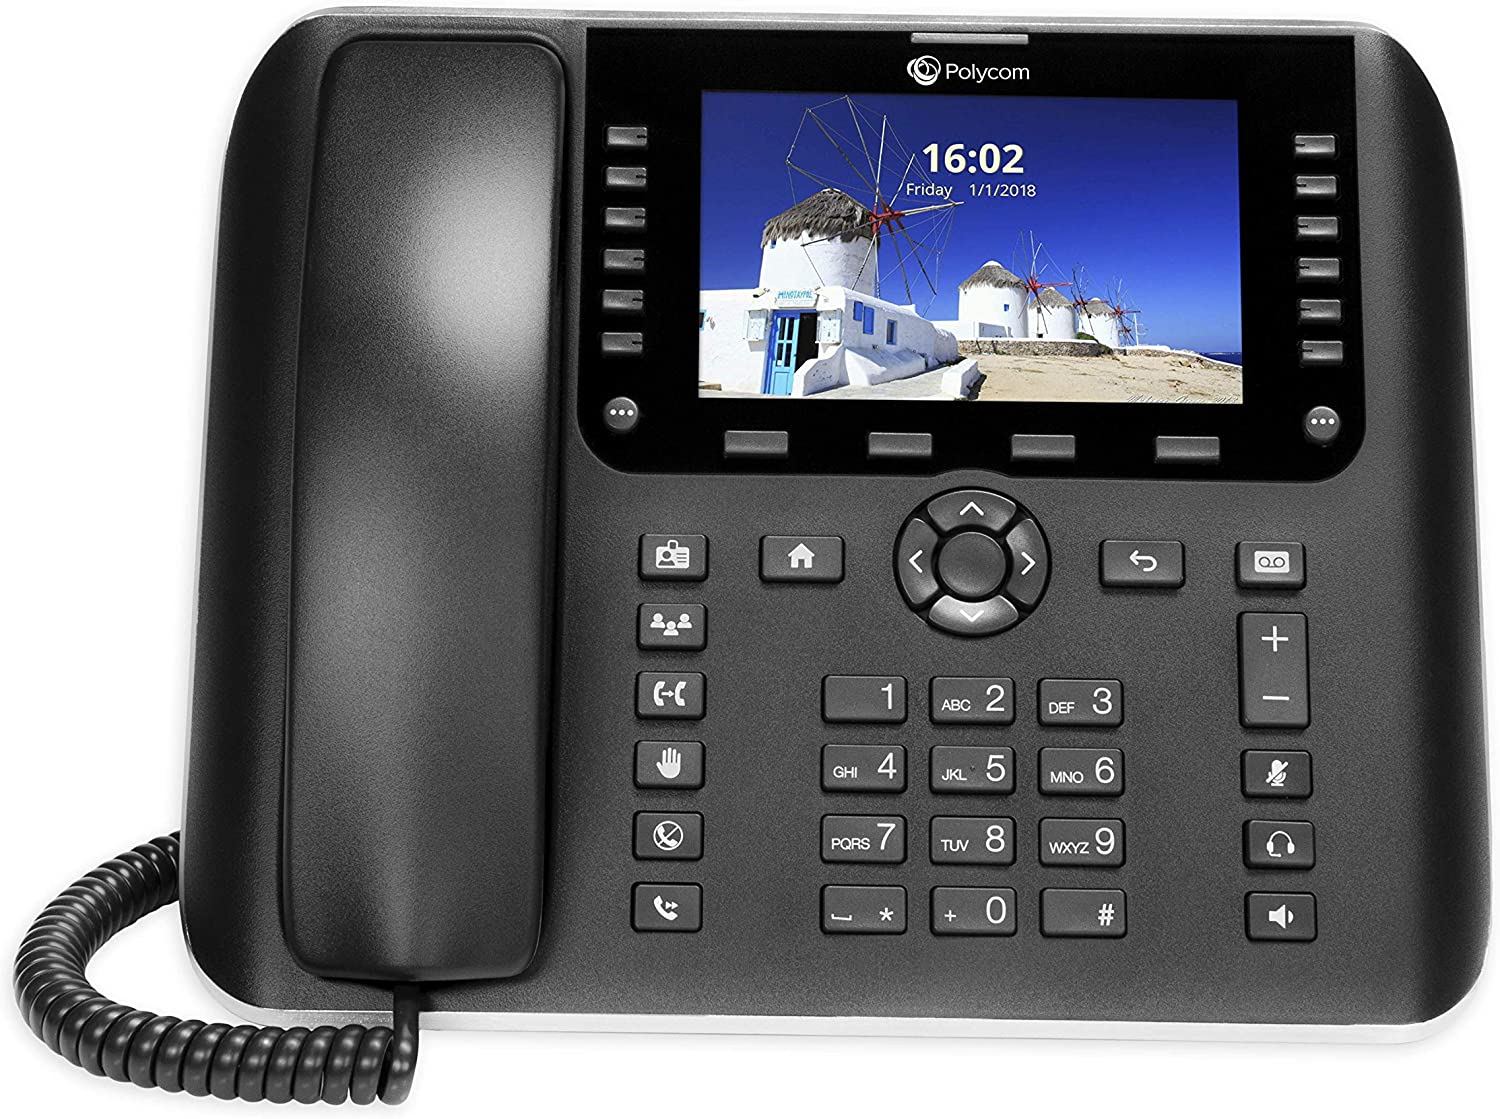 OBi2182 WiFi VOIP Phone with Power Adapter - 12-Line Cloud-Managed Gigabit Google Voice Phone with Color Display